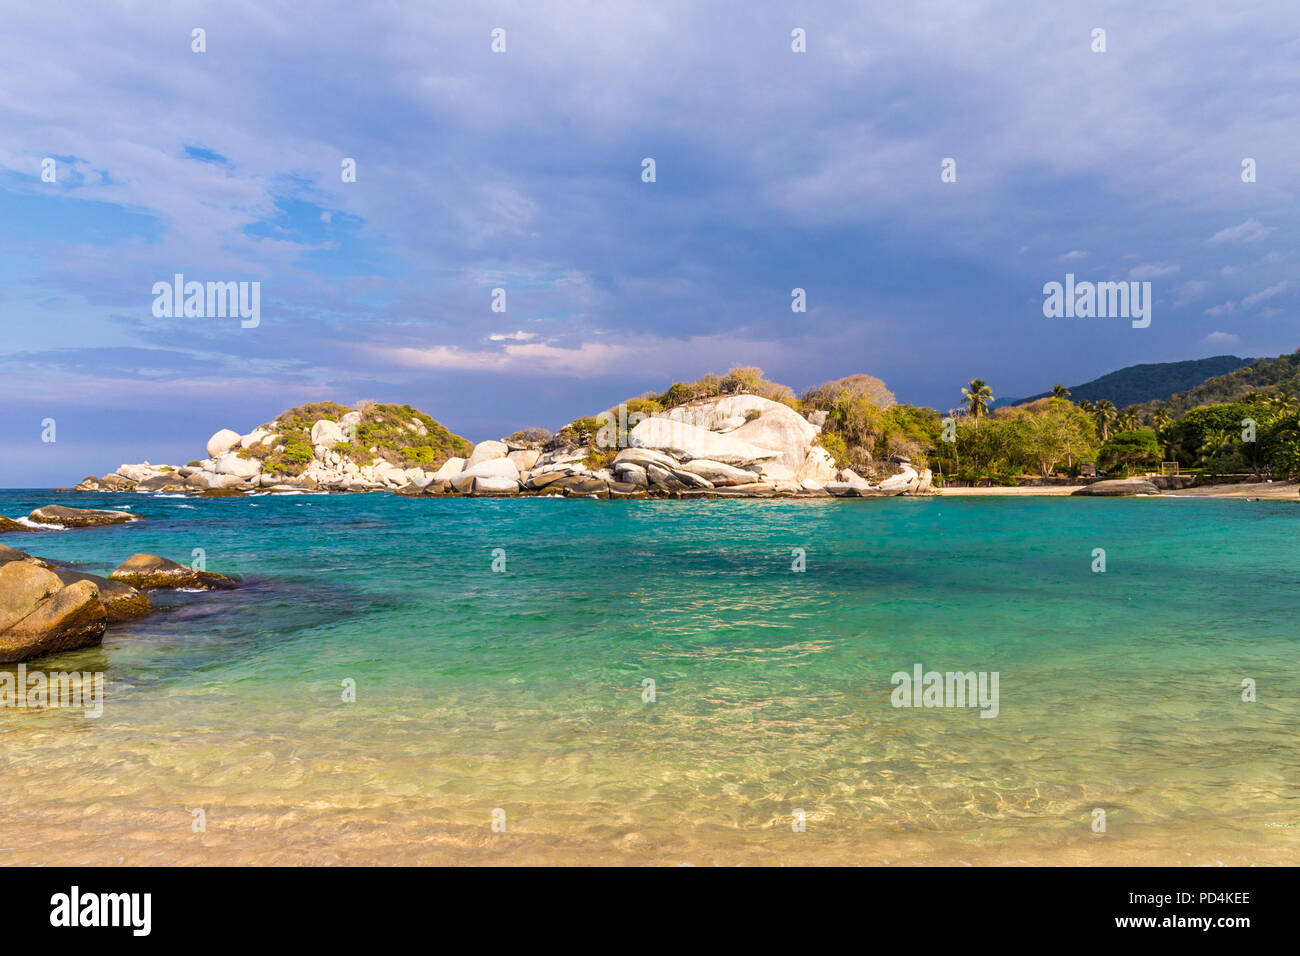 A view in Tayrona National Park in Colombia - Stock Image